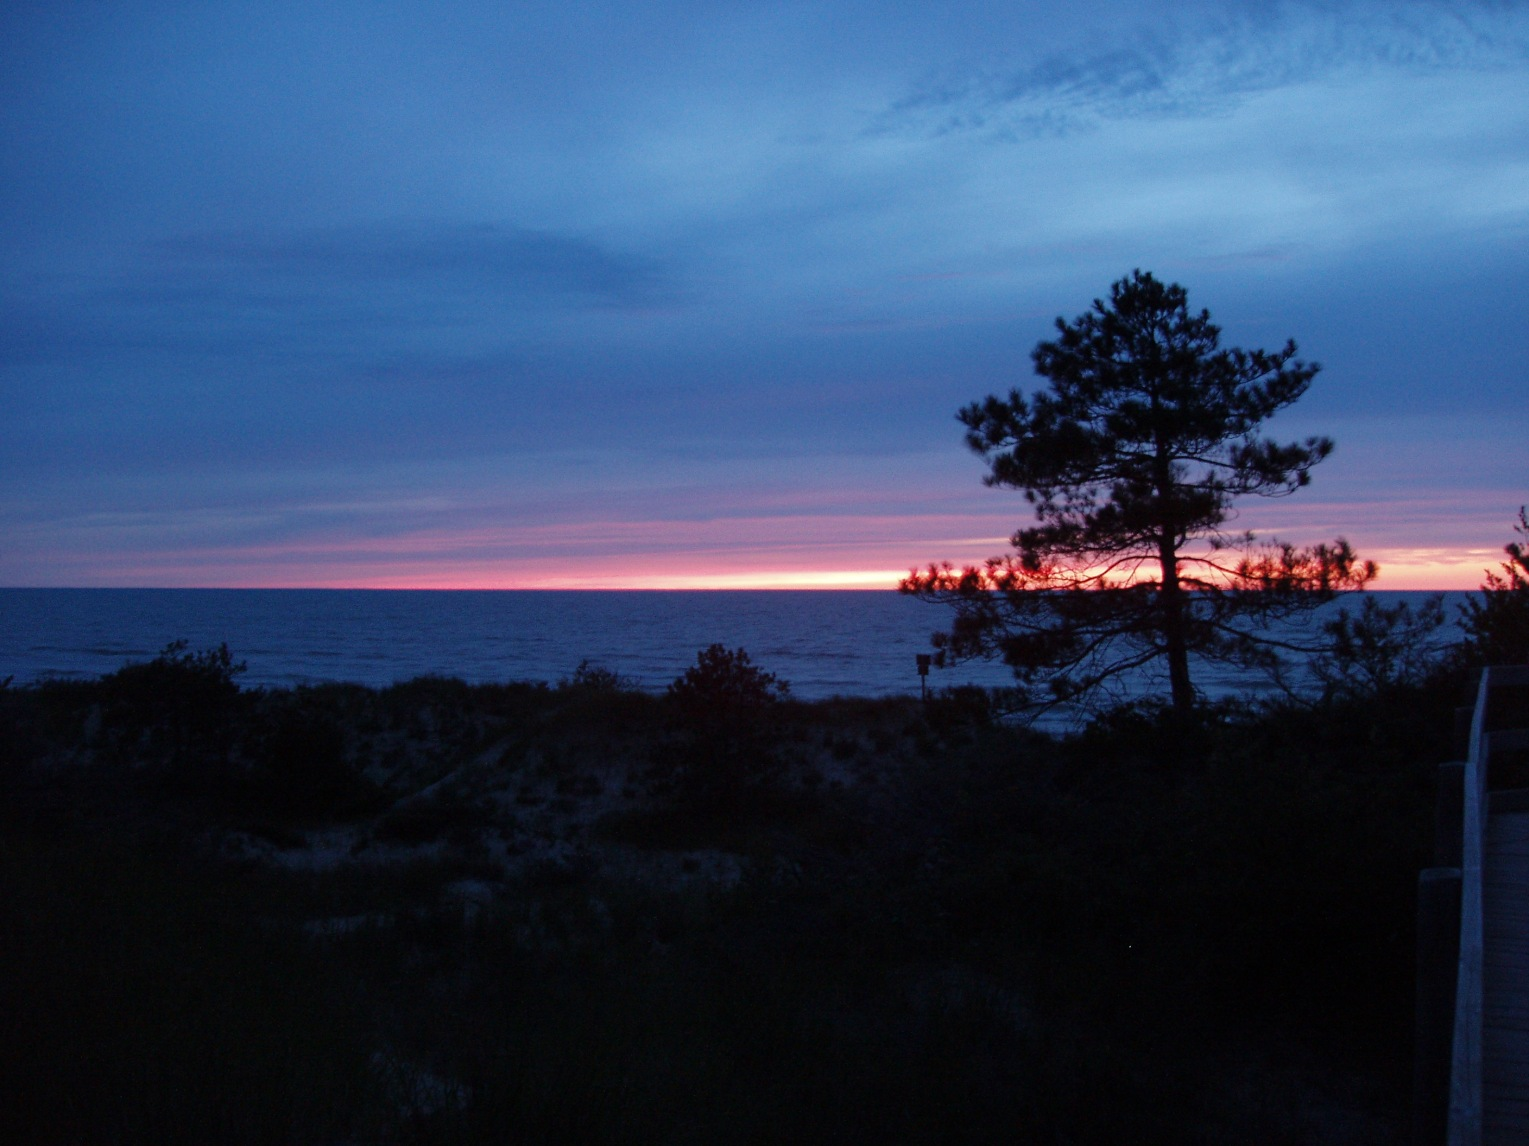 Blue Dusk with Pine Tree